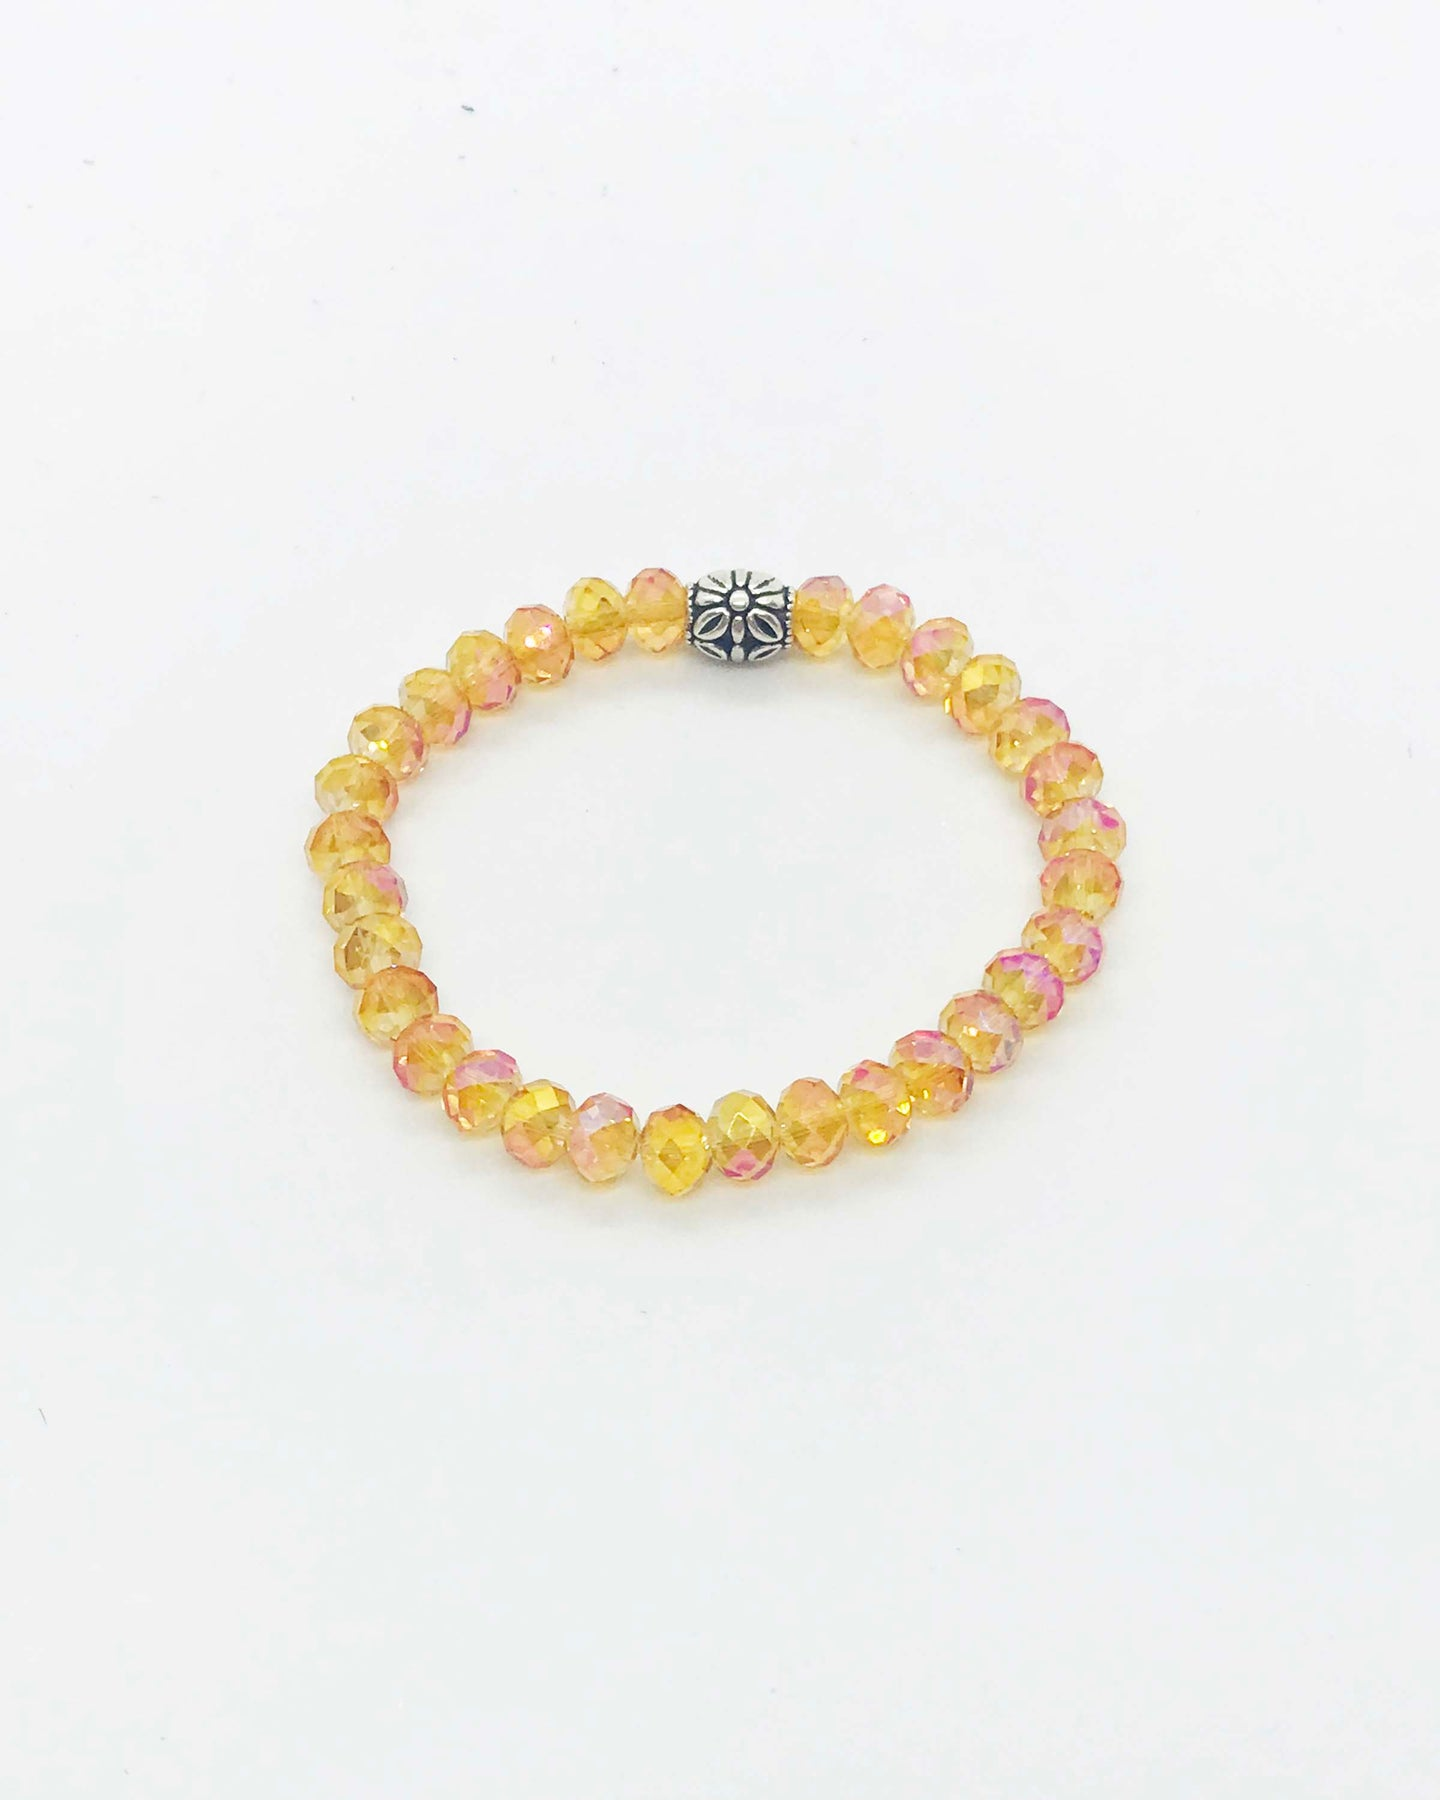 Glass Bead Bracelet - B570